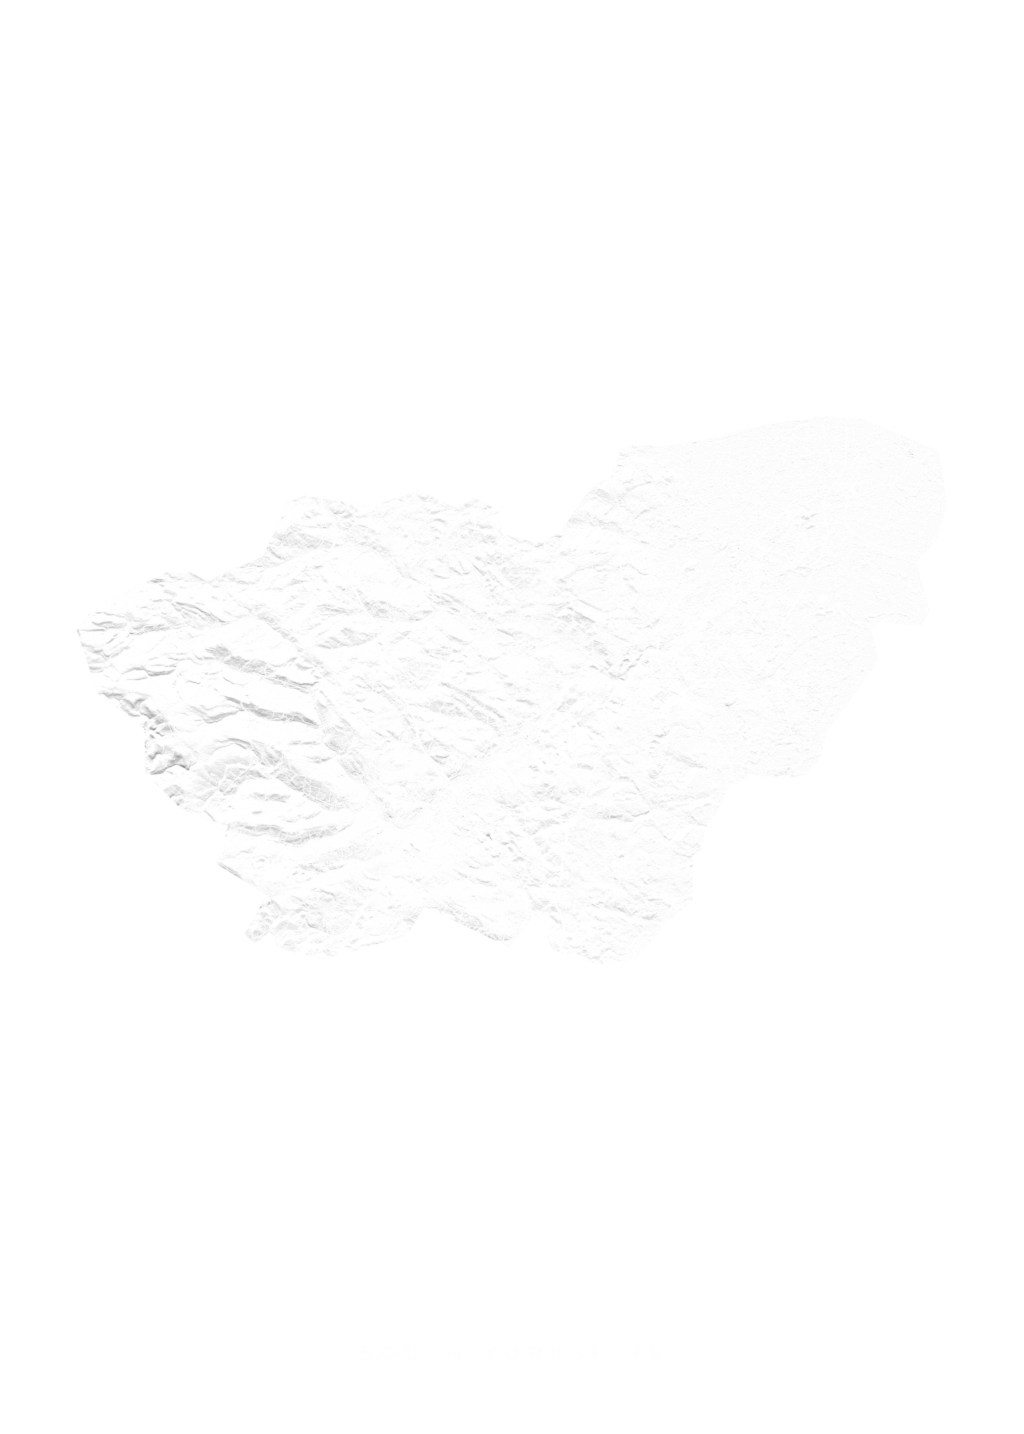 South Yorkshire wall map